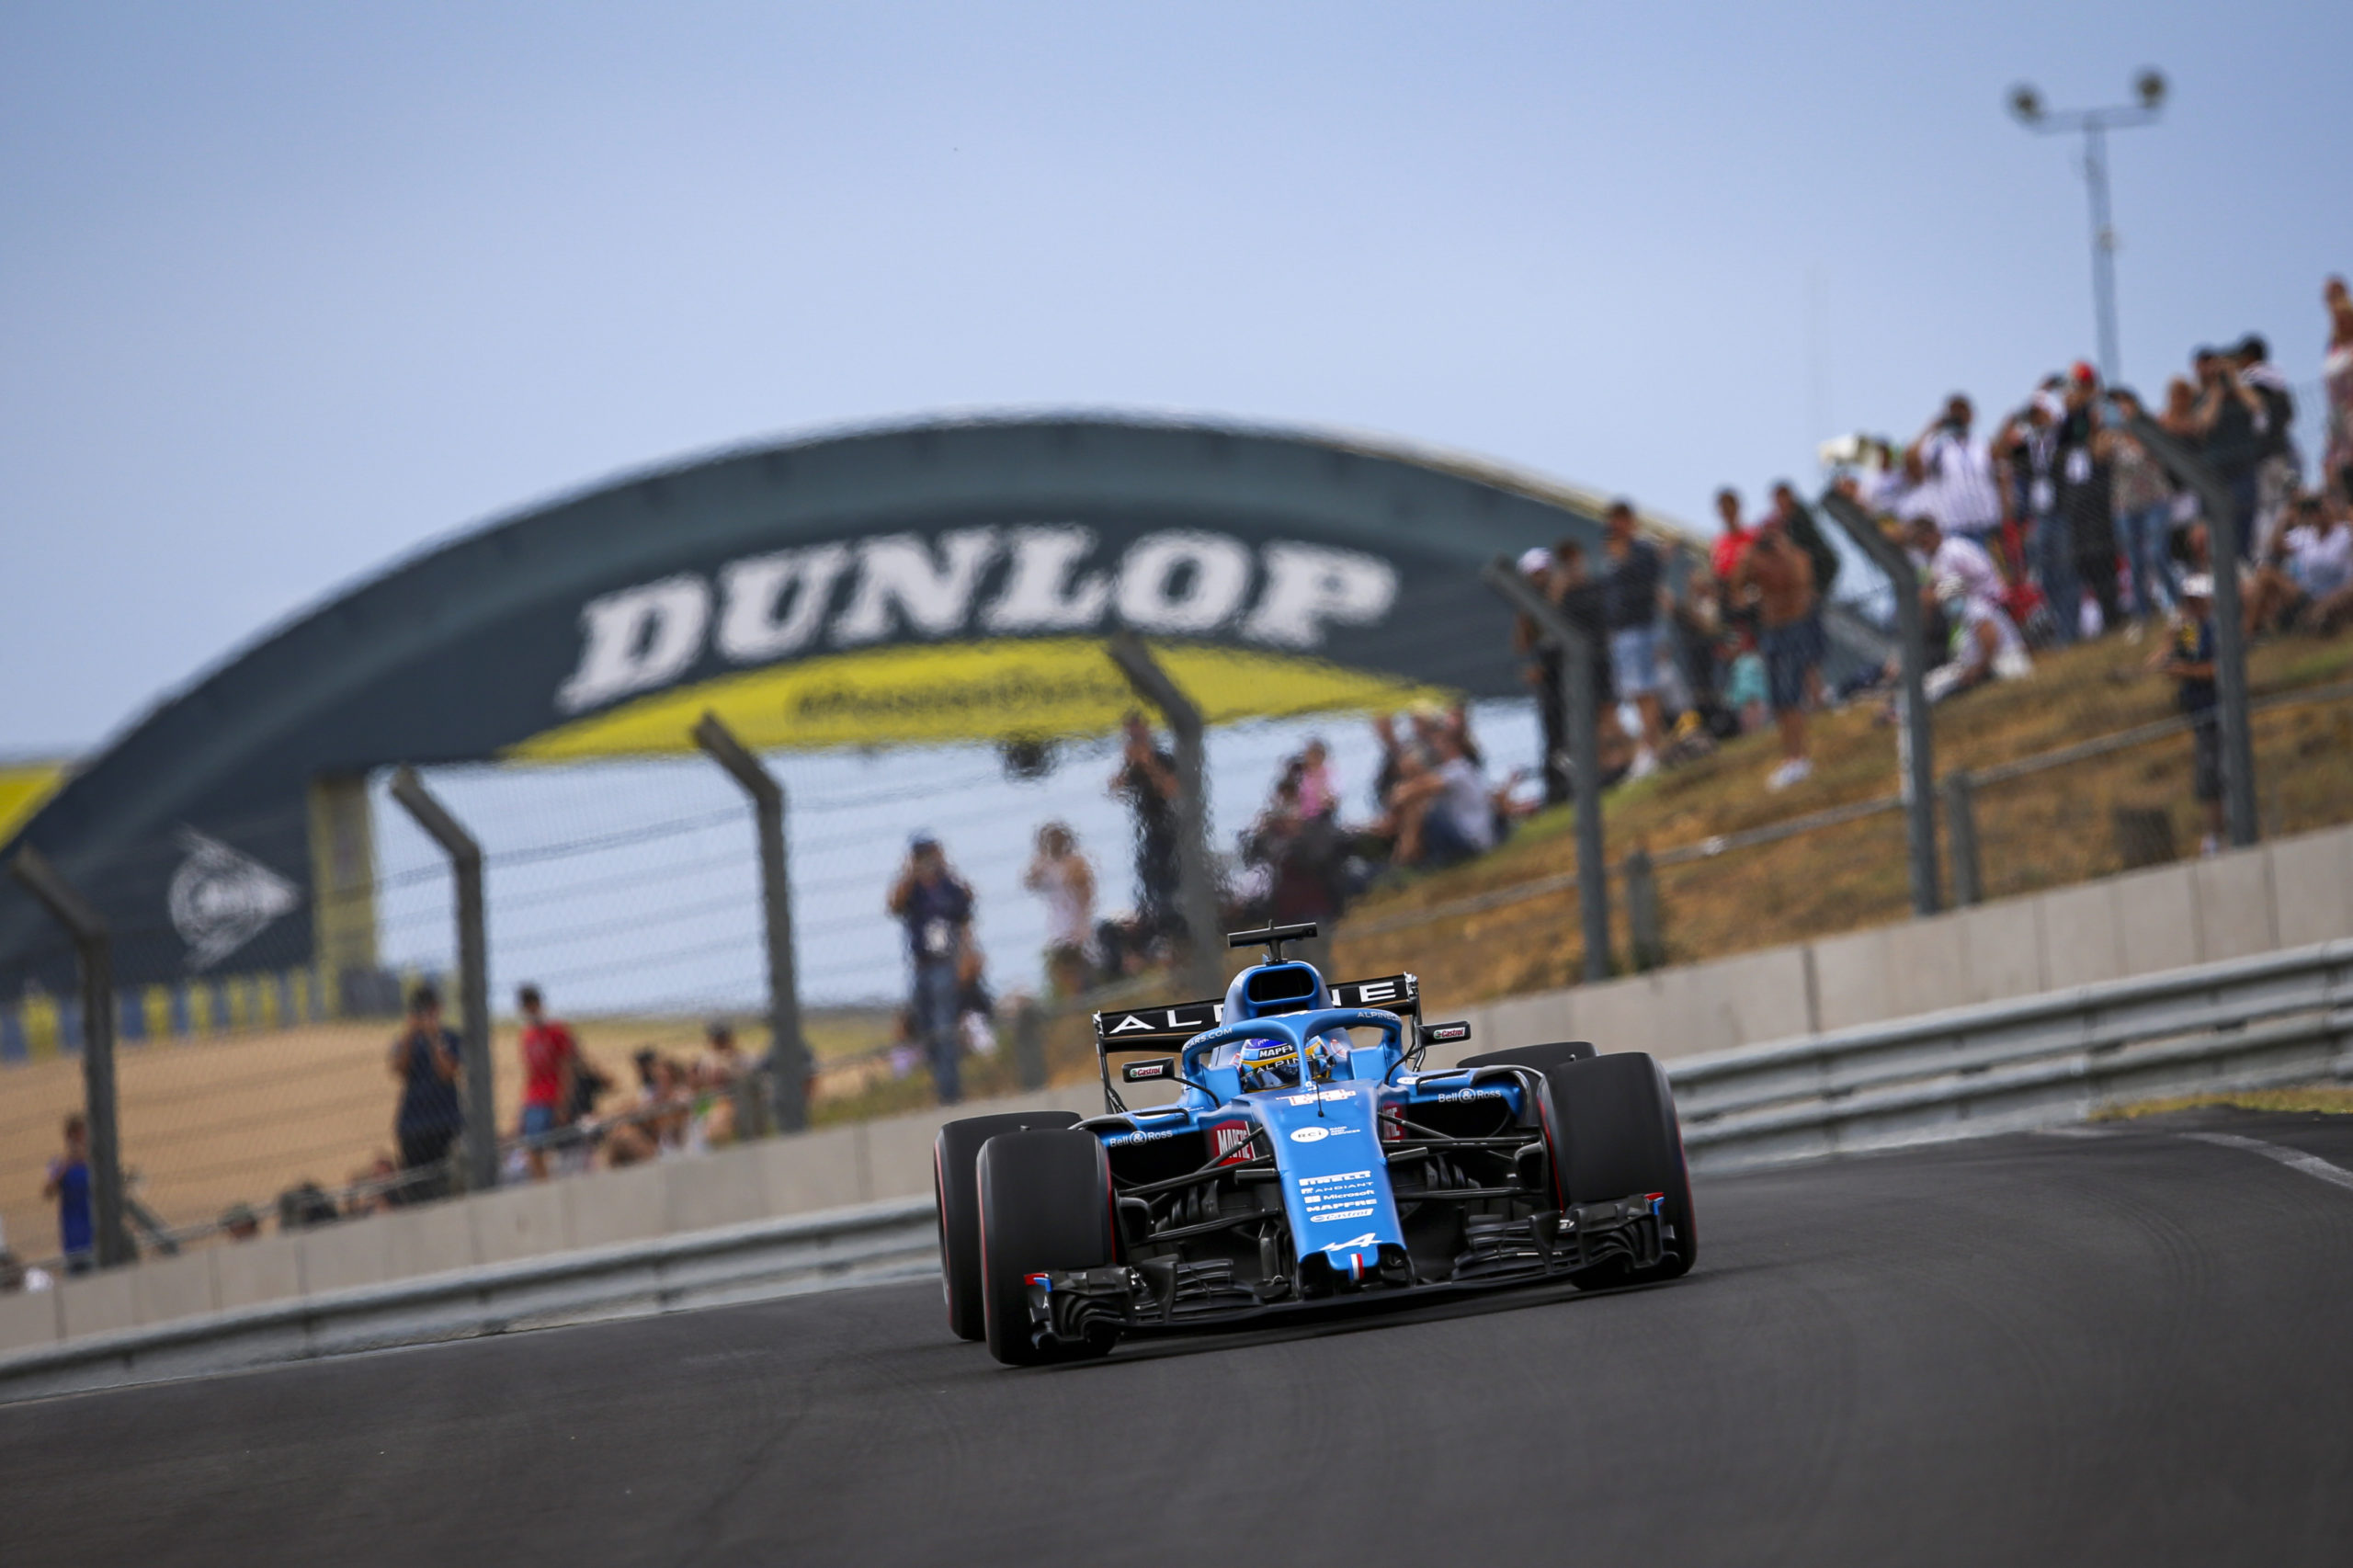 Alonso Fernando (spa), Alpine F1, action during the Alpine Parade prior the 24 Hours of Le Mans 2021, 4th round of the 2021 FIA World Endurance Championship, FIA WEC, on the Circuit de la Sarthe, on August 21 , 2021 in Le Mans, France - Photo Joao Filipe / DPPI